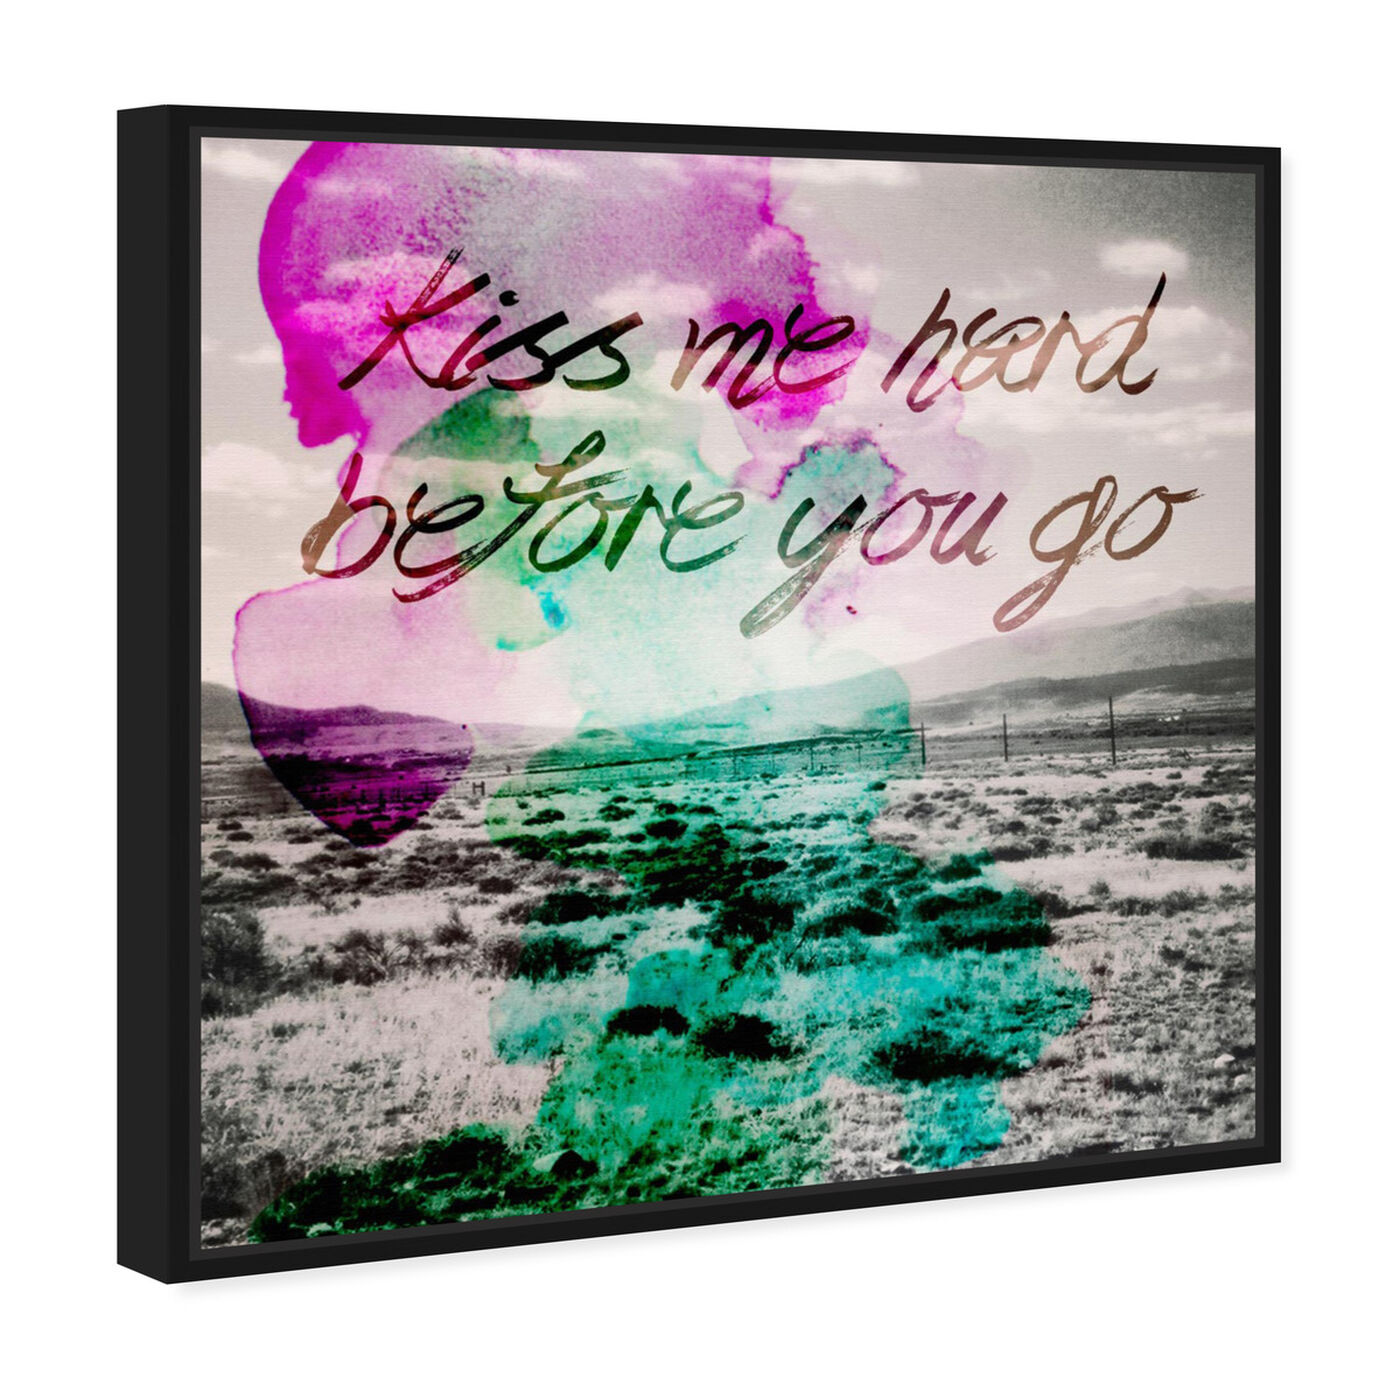 Angled view of Kiss Me Hard Before You Go featuring typography and quotes and love quotes and sayings art.